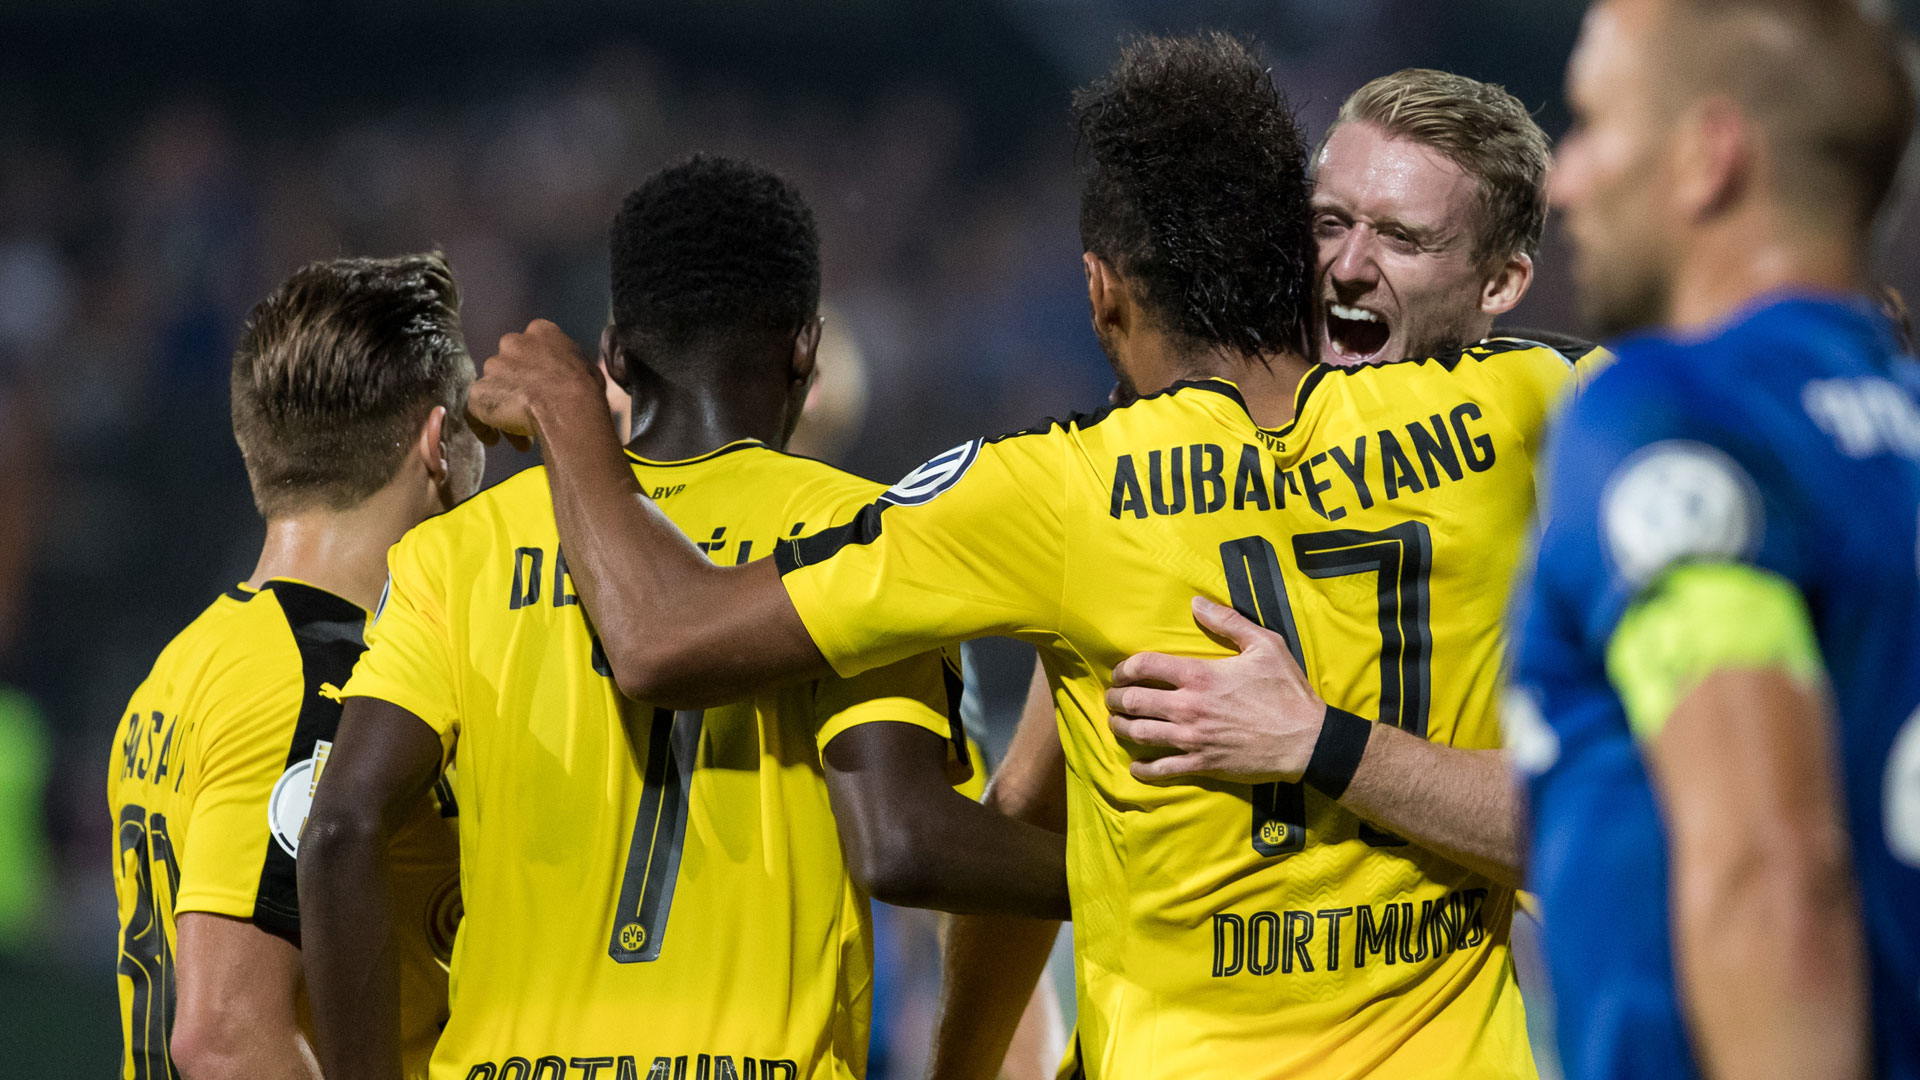 Video: Eintracht Trier vs Borussia Dortmund